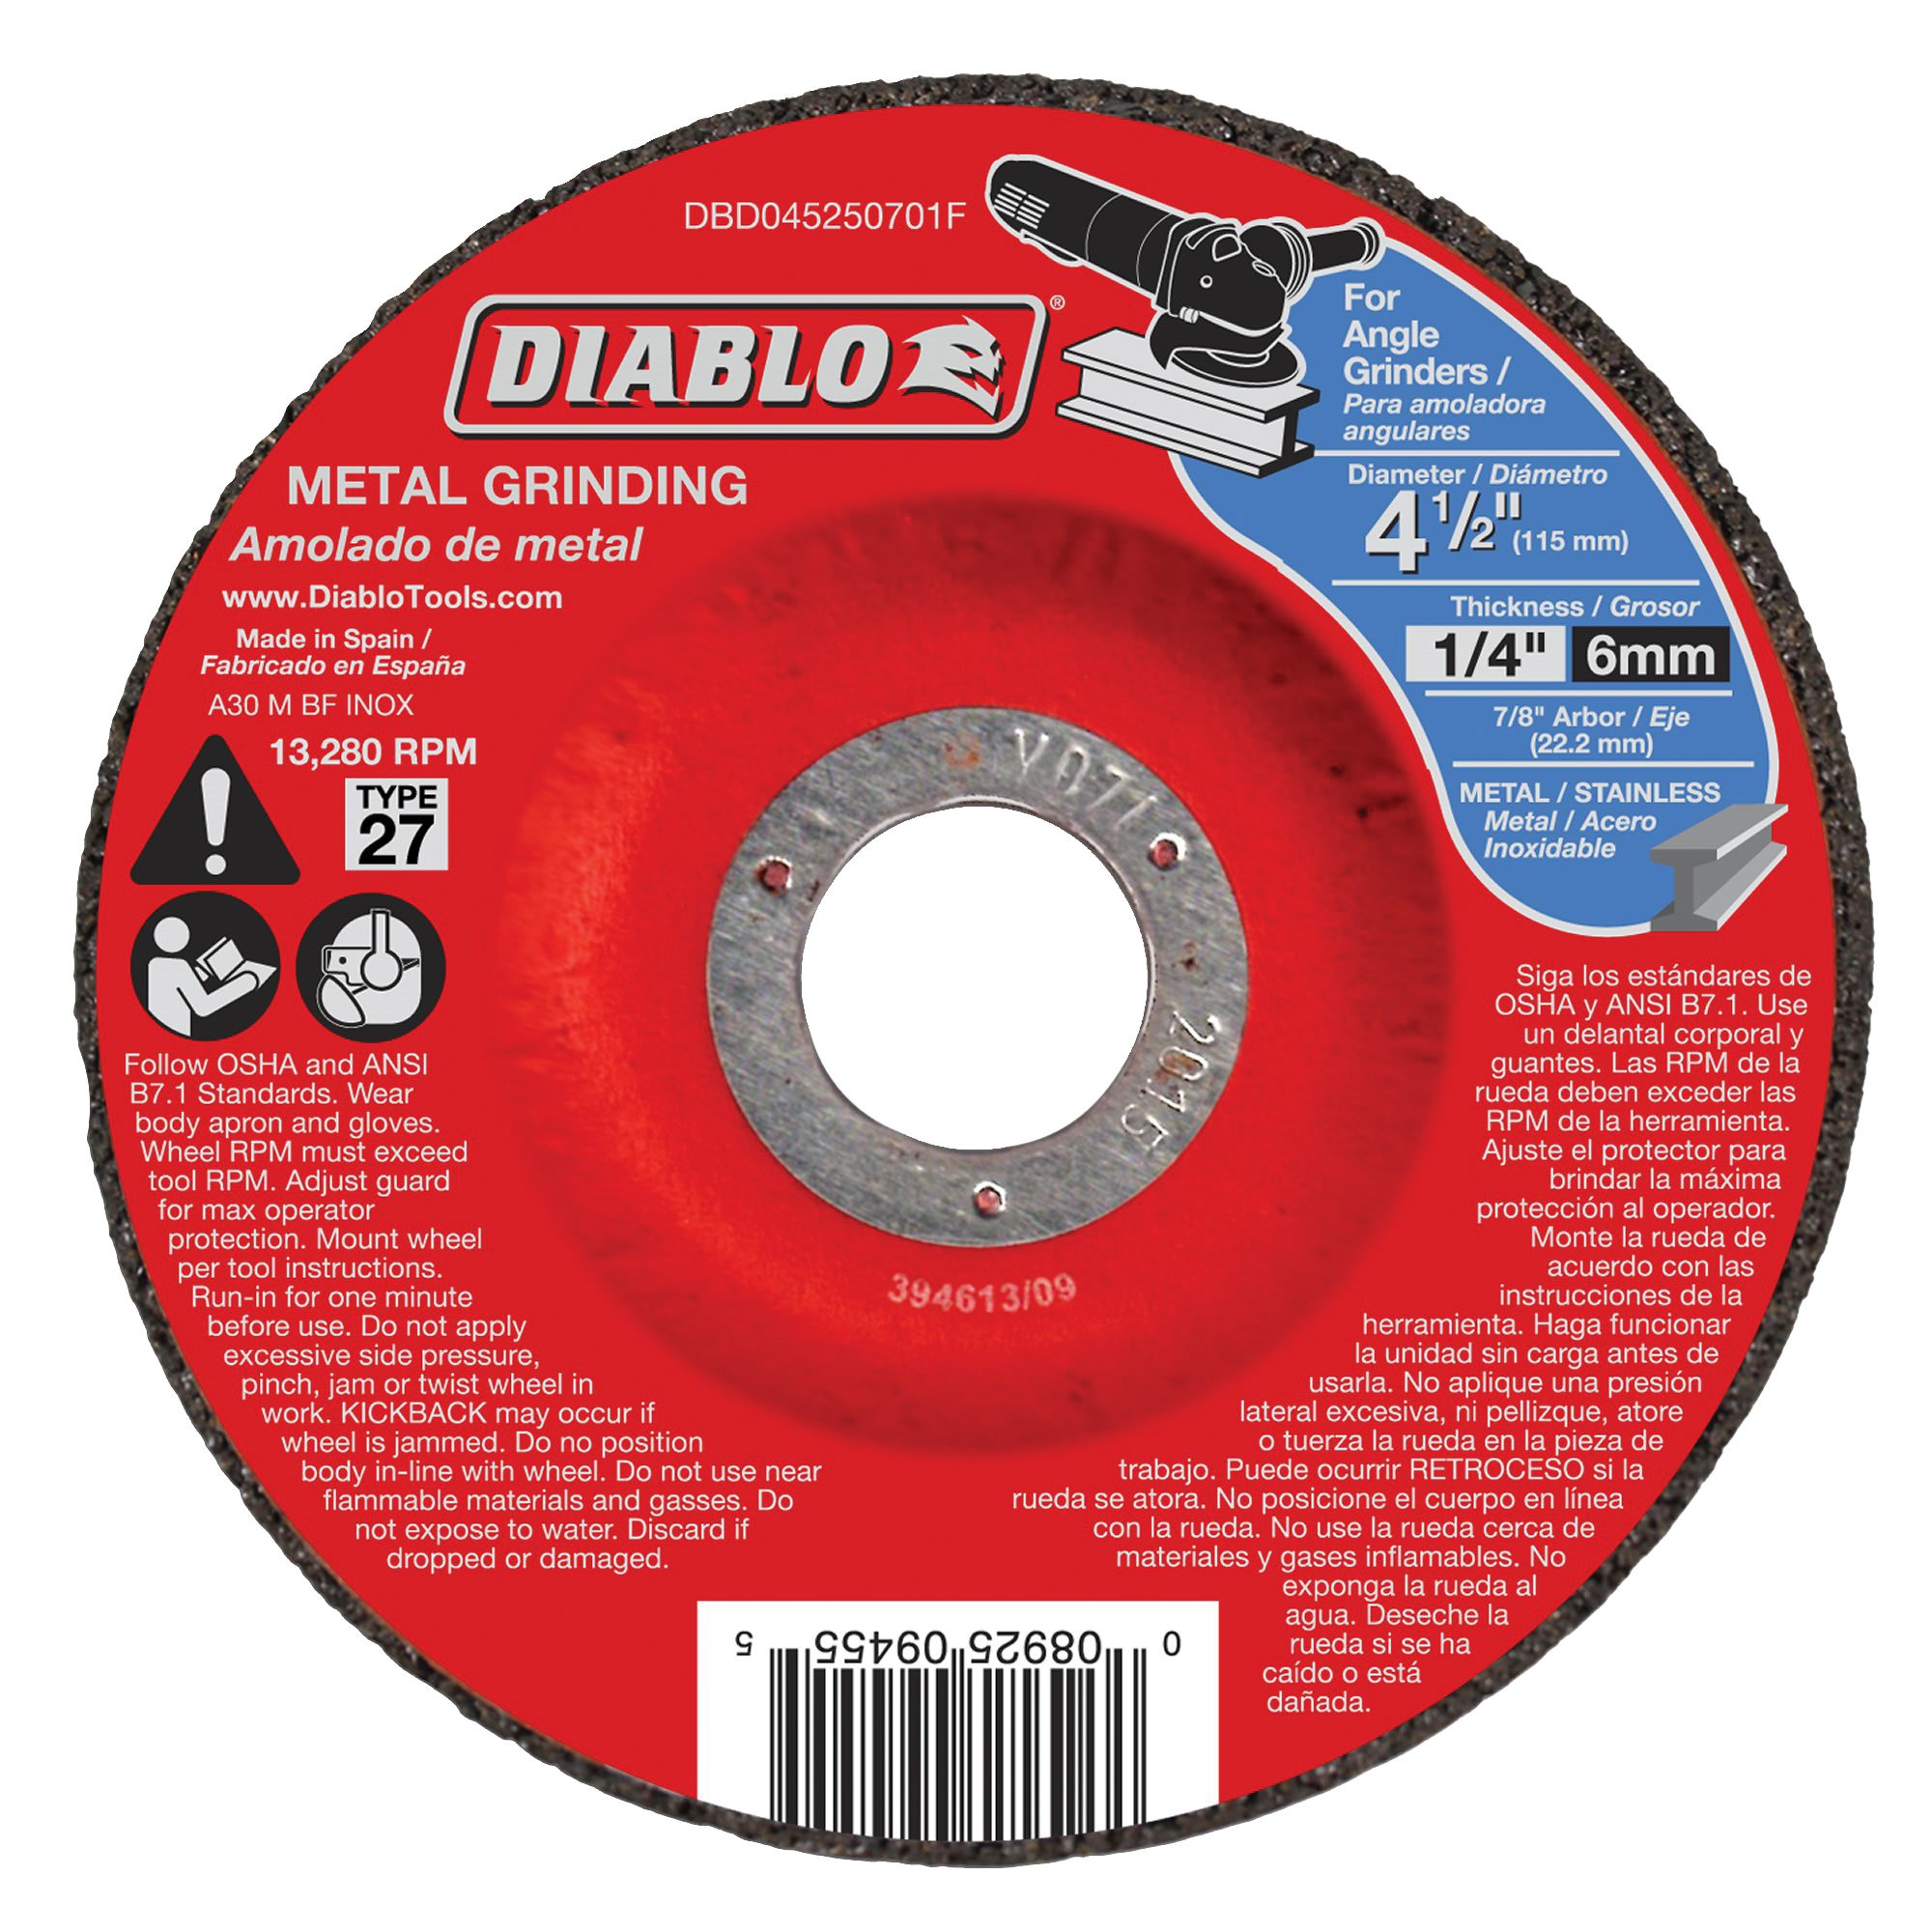 Picture of Diablo DBD045250701F Grinding Wheel, 4-1/2 in Dia, 1/4 in Thick, 7/8 in Arbor, Aluminum Oxide Abrasive